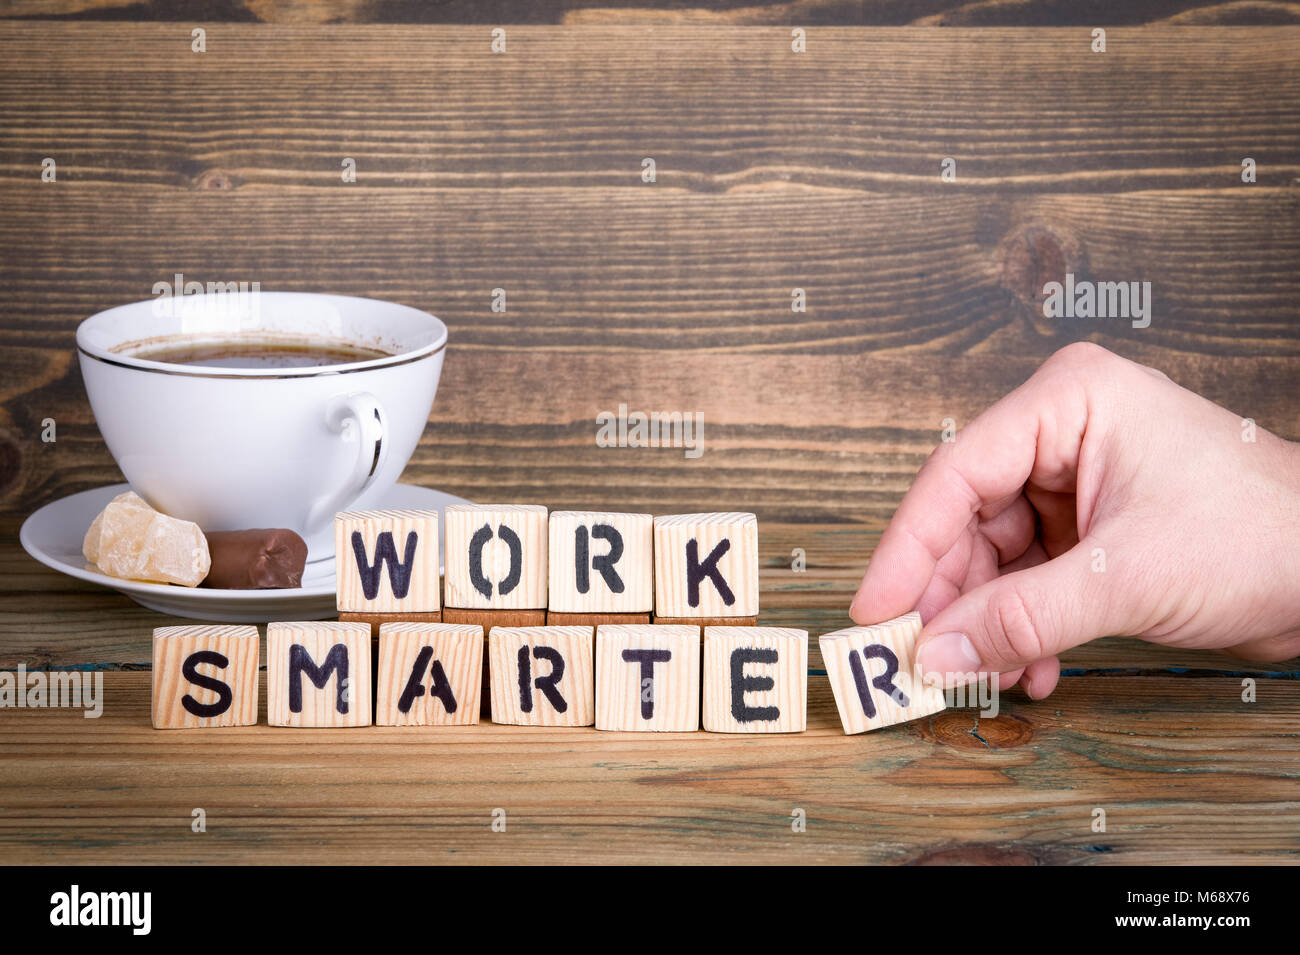 work smarter. Wooden letters on the office desk, informative and communication background - Stock Image